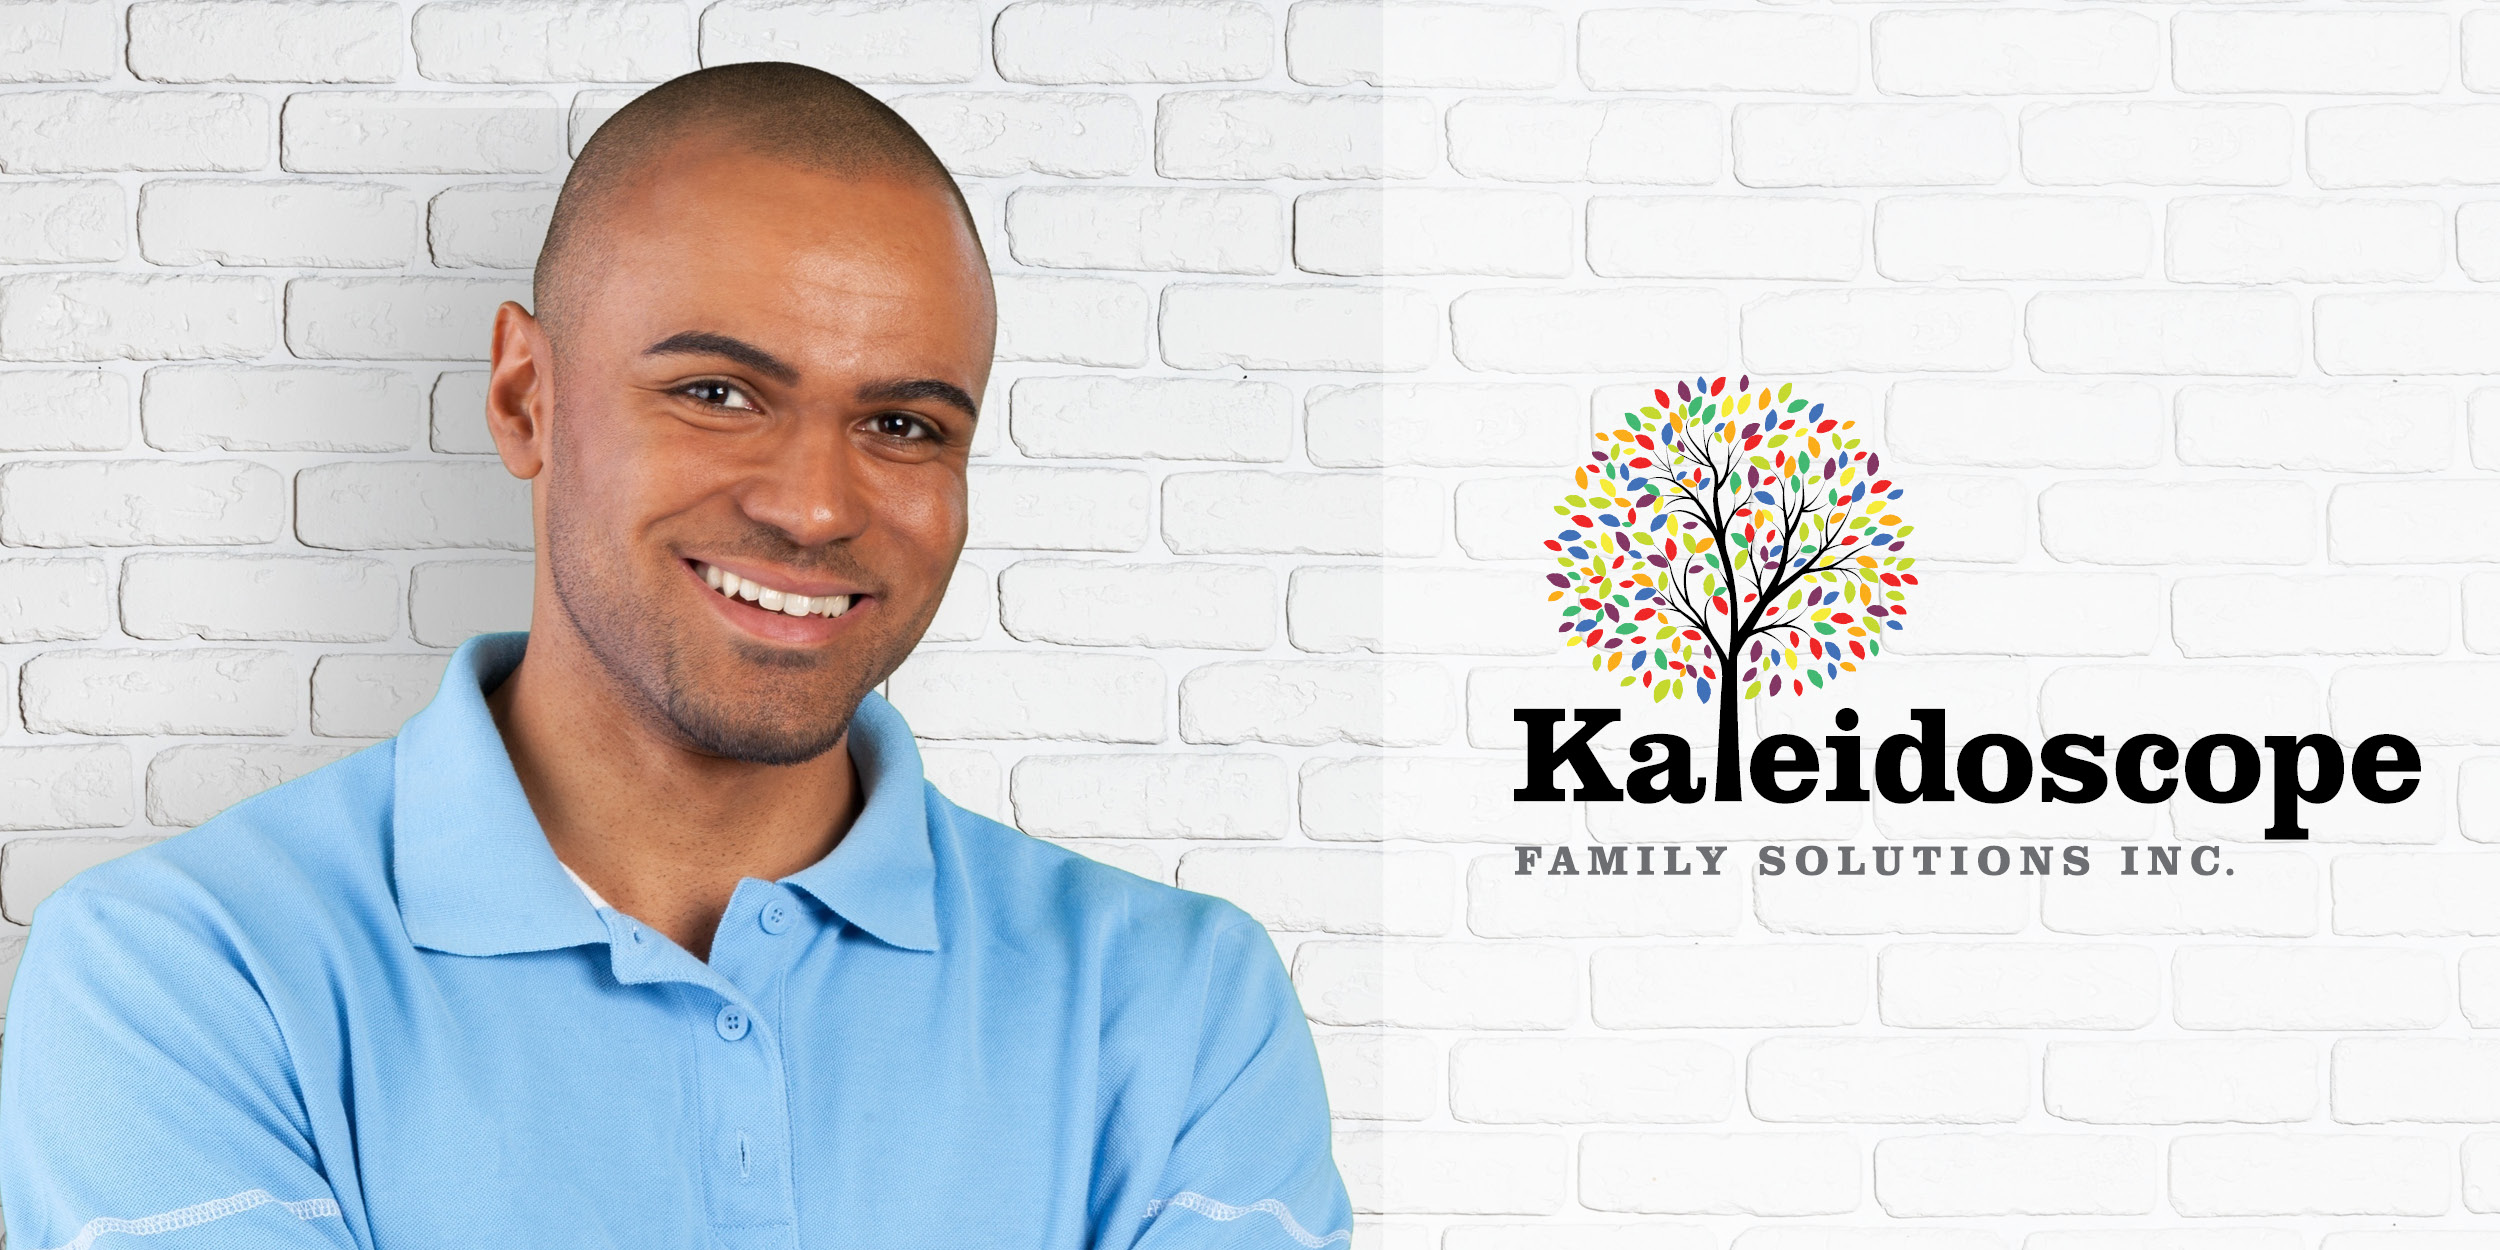 Kaleidoscope Family Solutions Inc - In Home Therapy- Master's level banner image